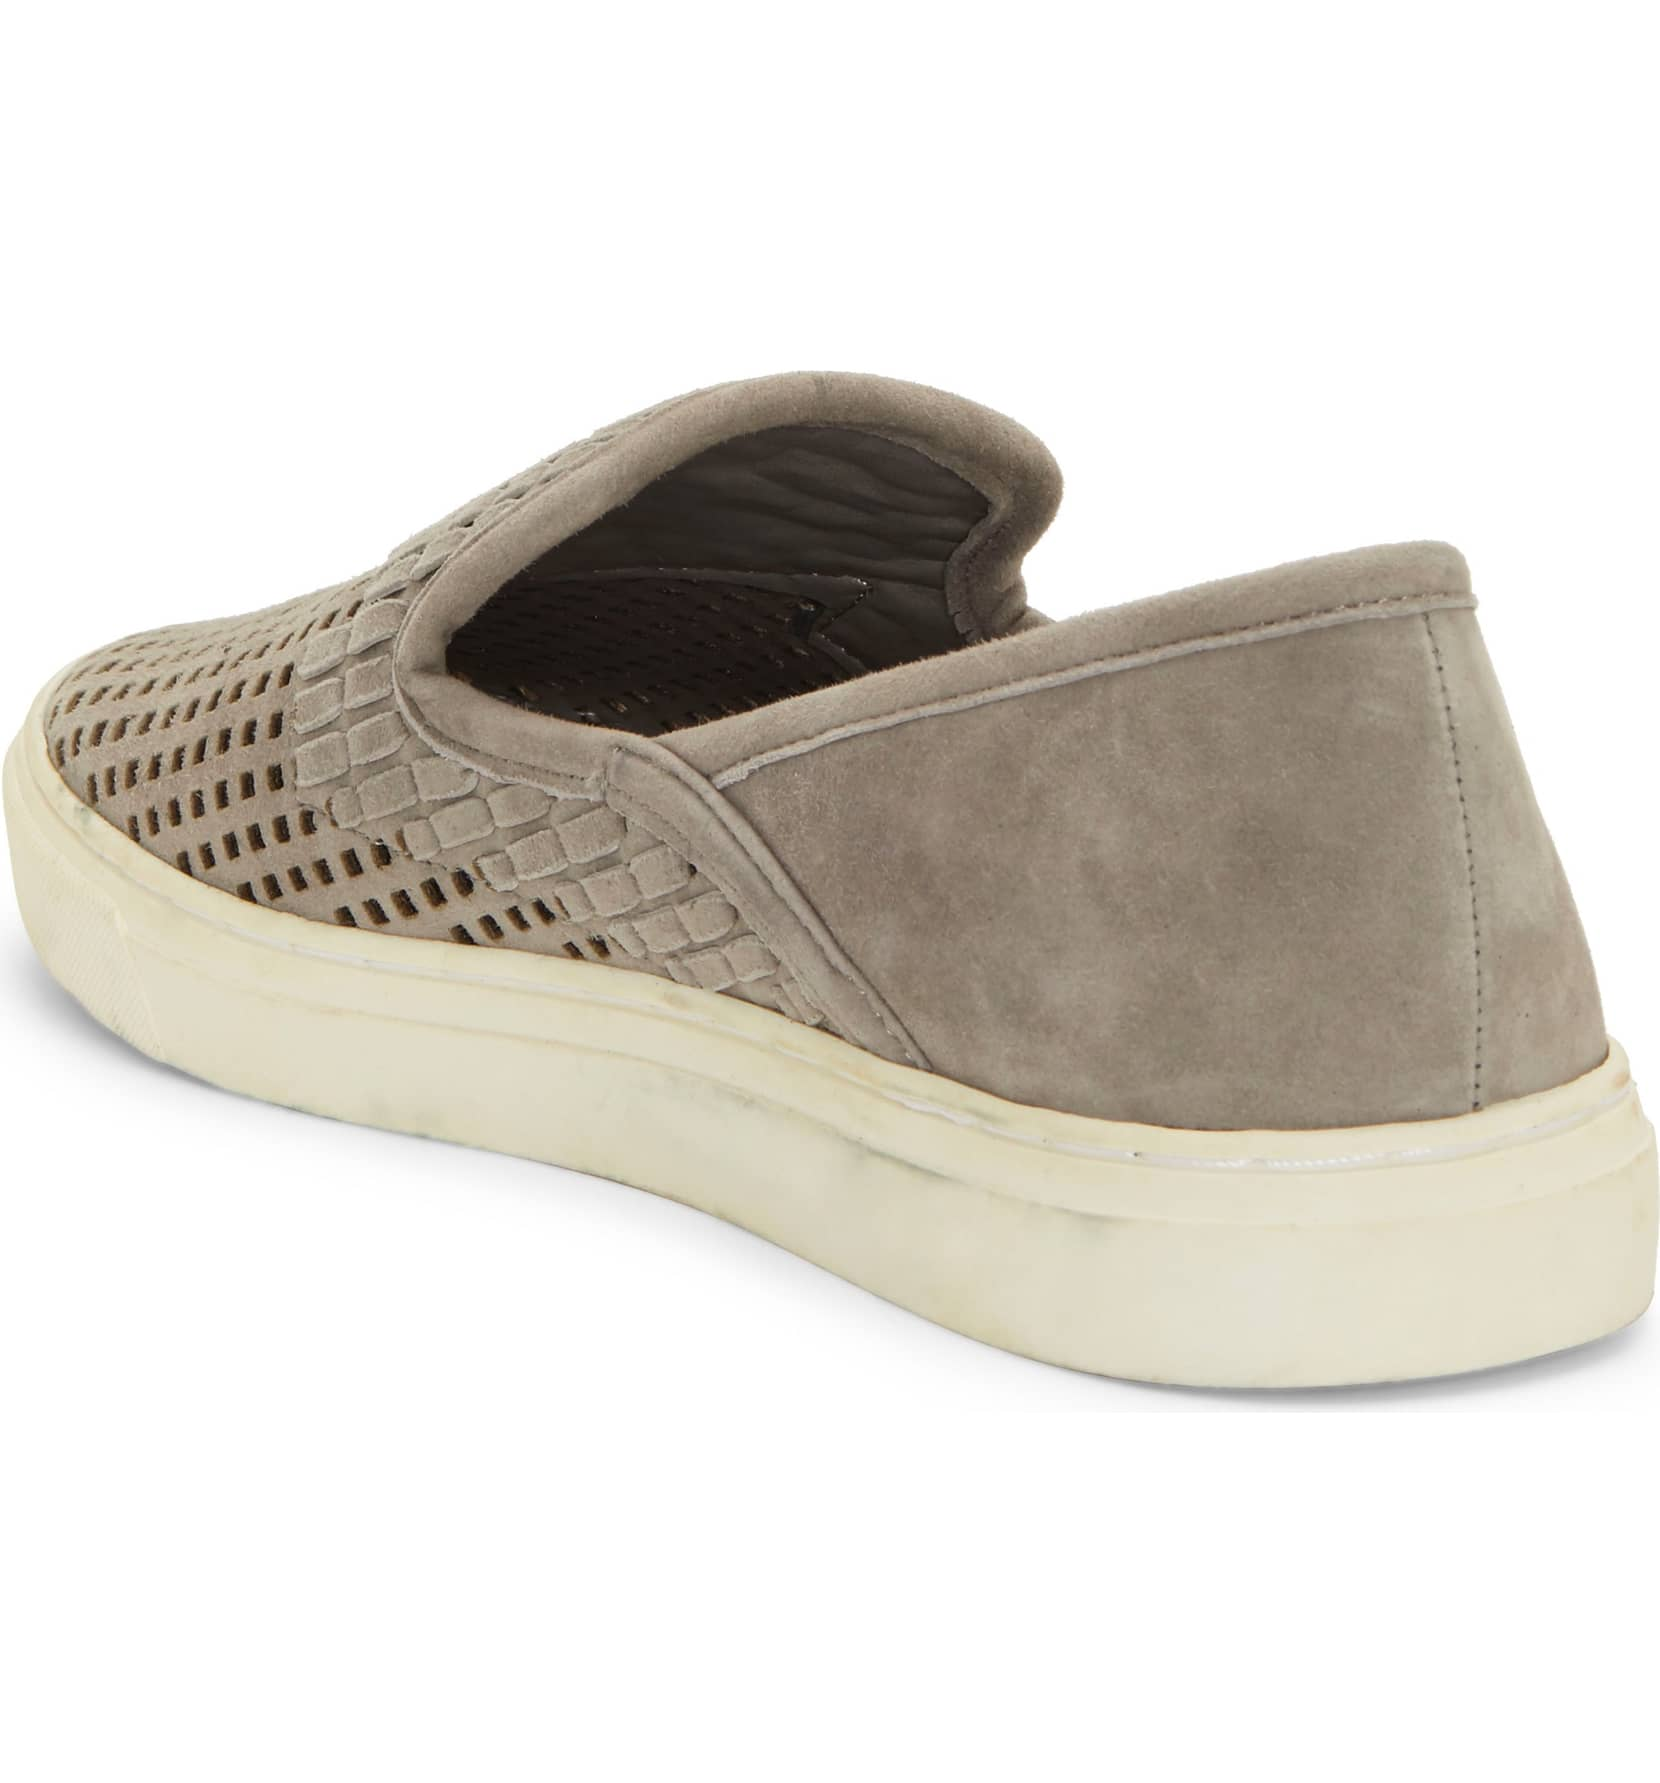 Vince-Camuto-Bristie-Storm-Grey-Leather-Woven-White-Sole-Slip-On-Sneakers thumbnail 8